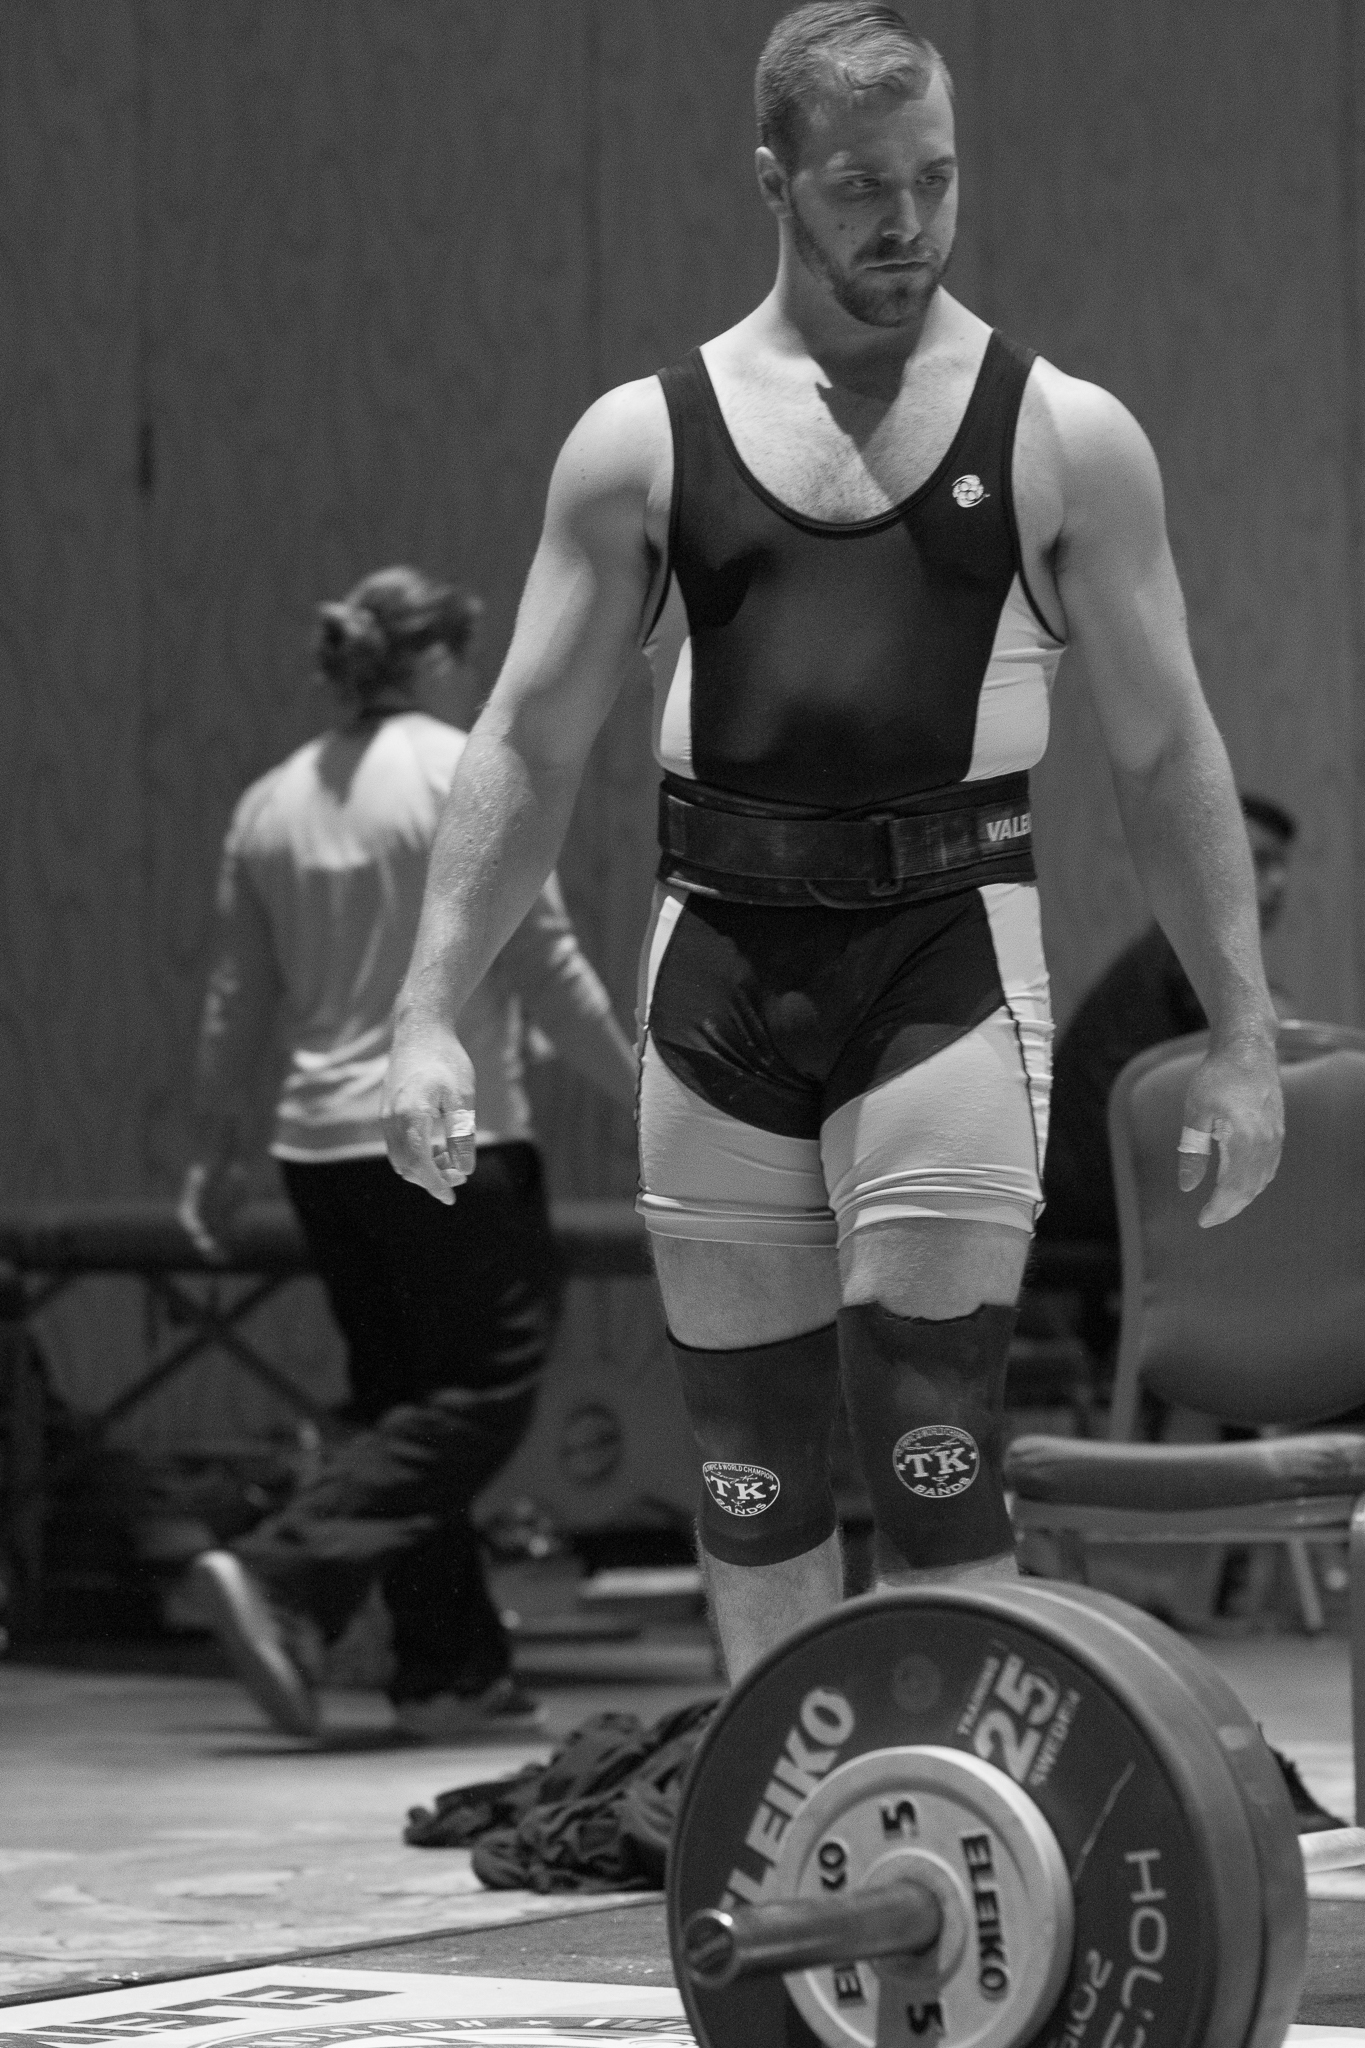 session-a-favorites-american-open-2016-weightlifting-photography (21 of 38).jpg